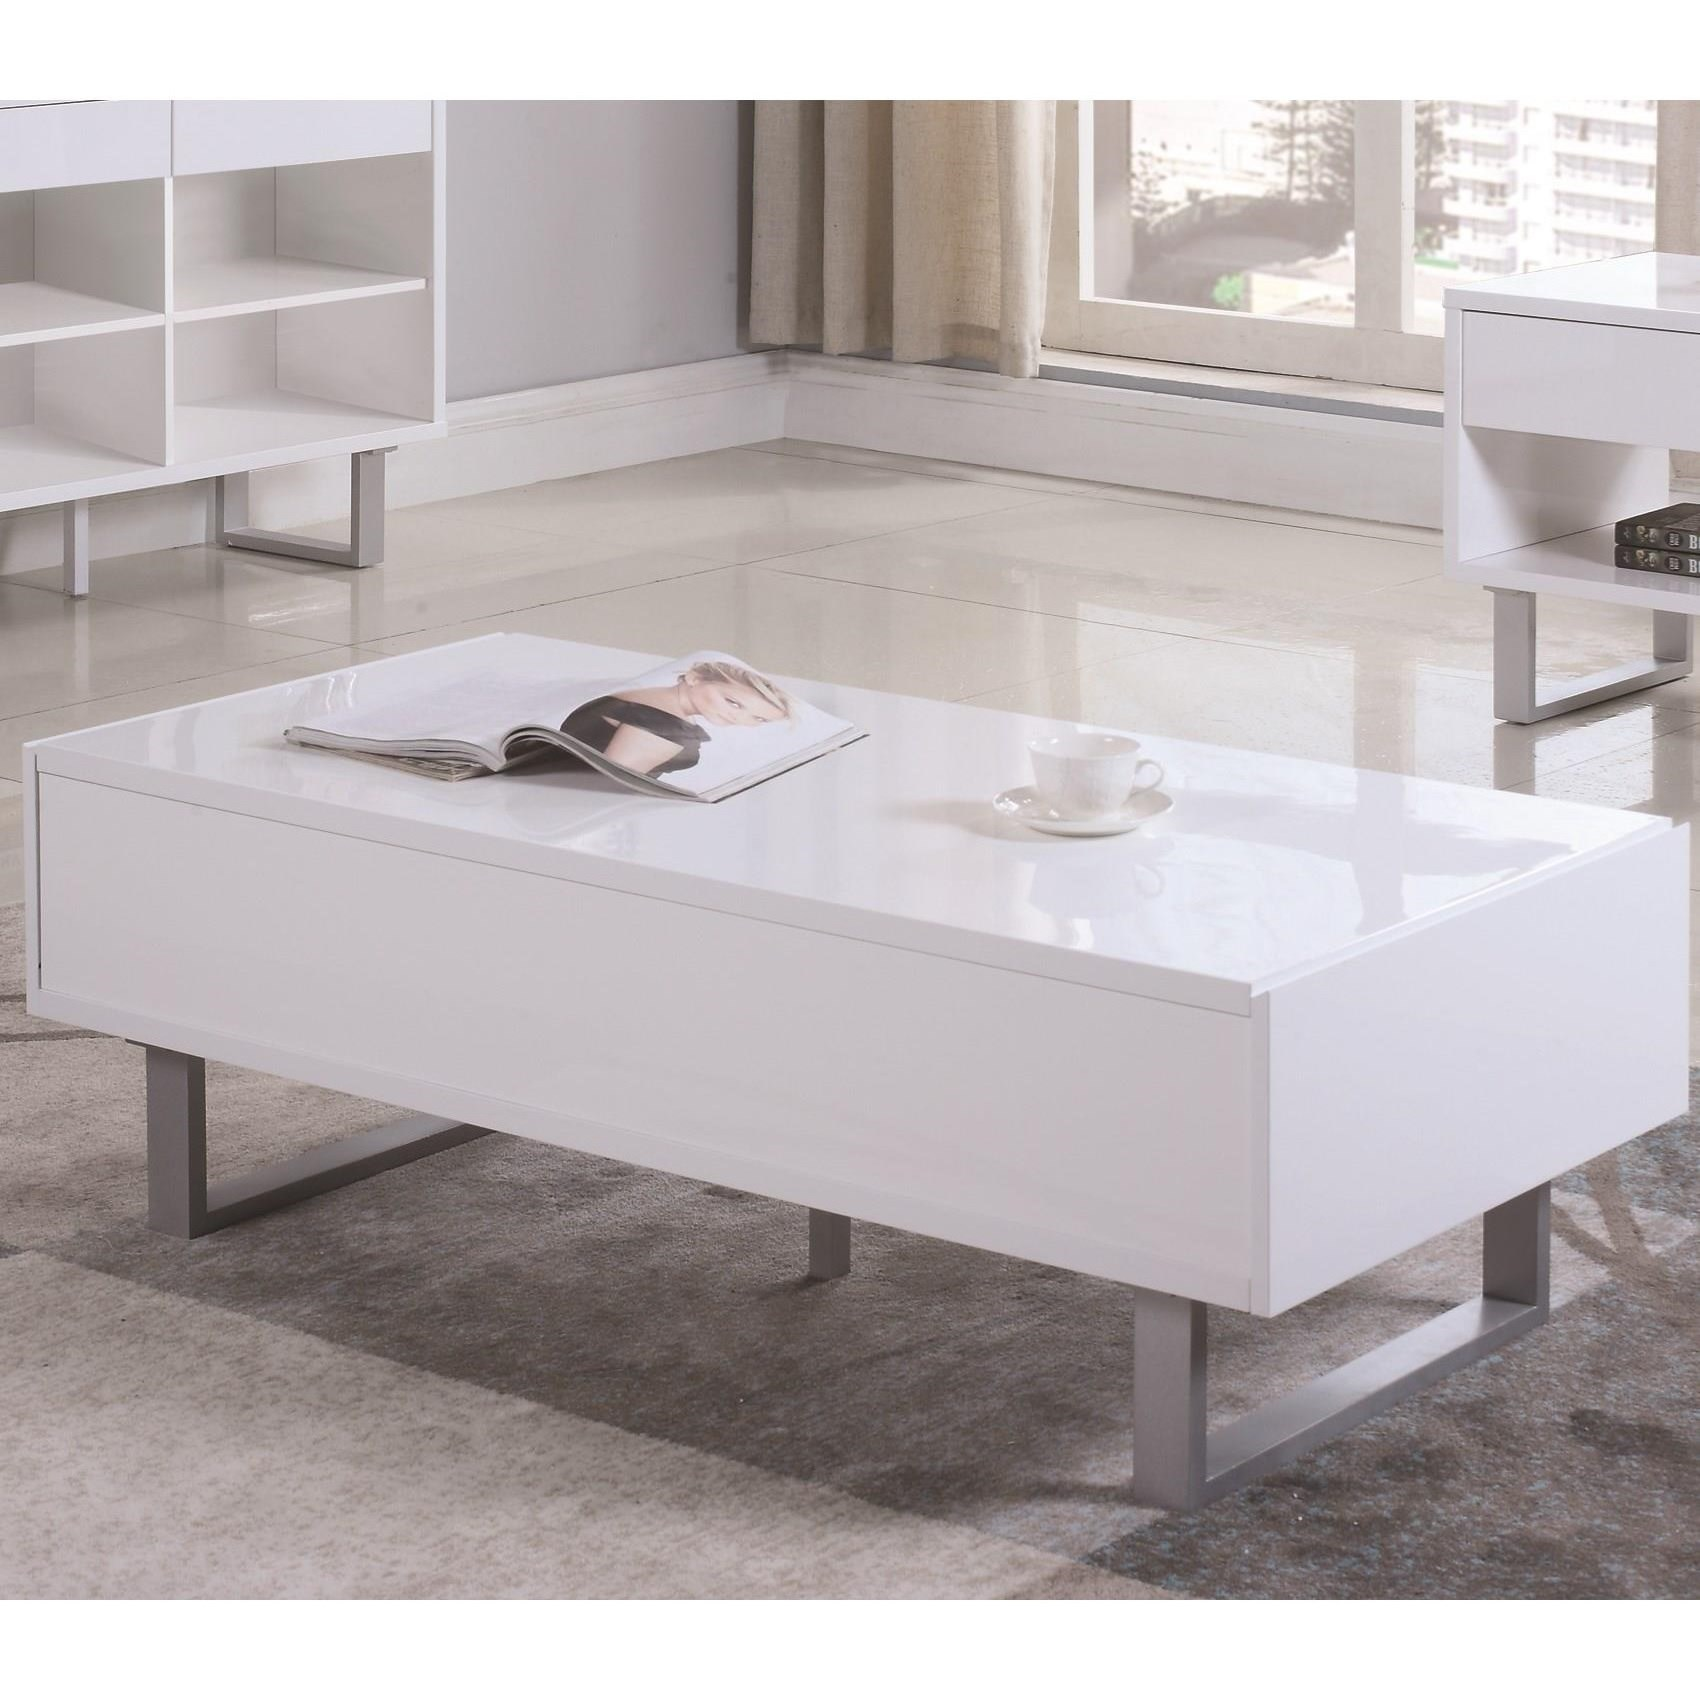 70569 Coffee Table by Coaster at Corner Furniture